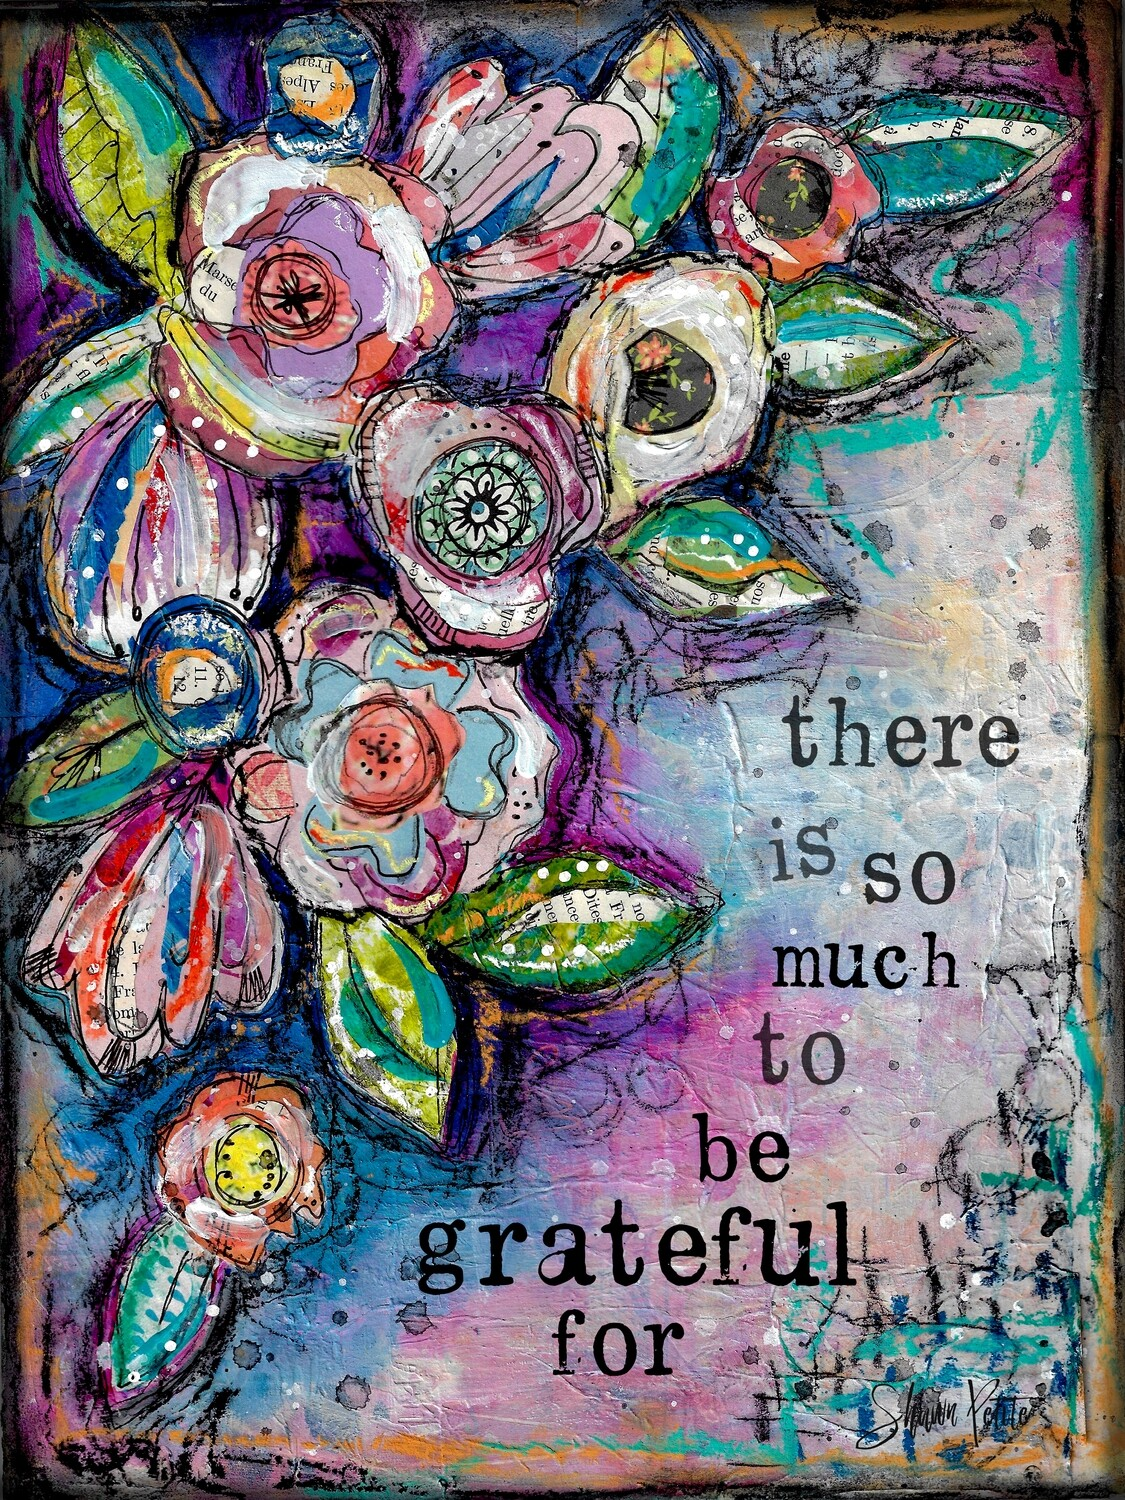 There is so much to be grateful for Print on Wood 5x7 Overstock